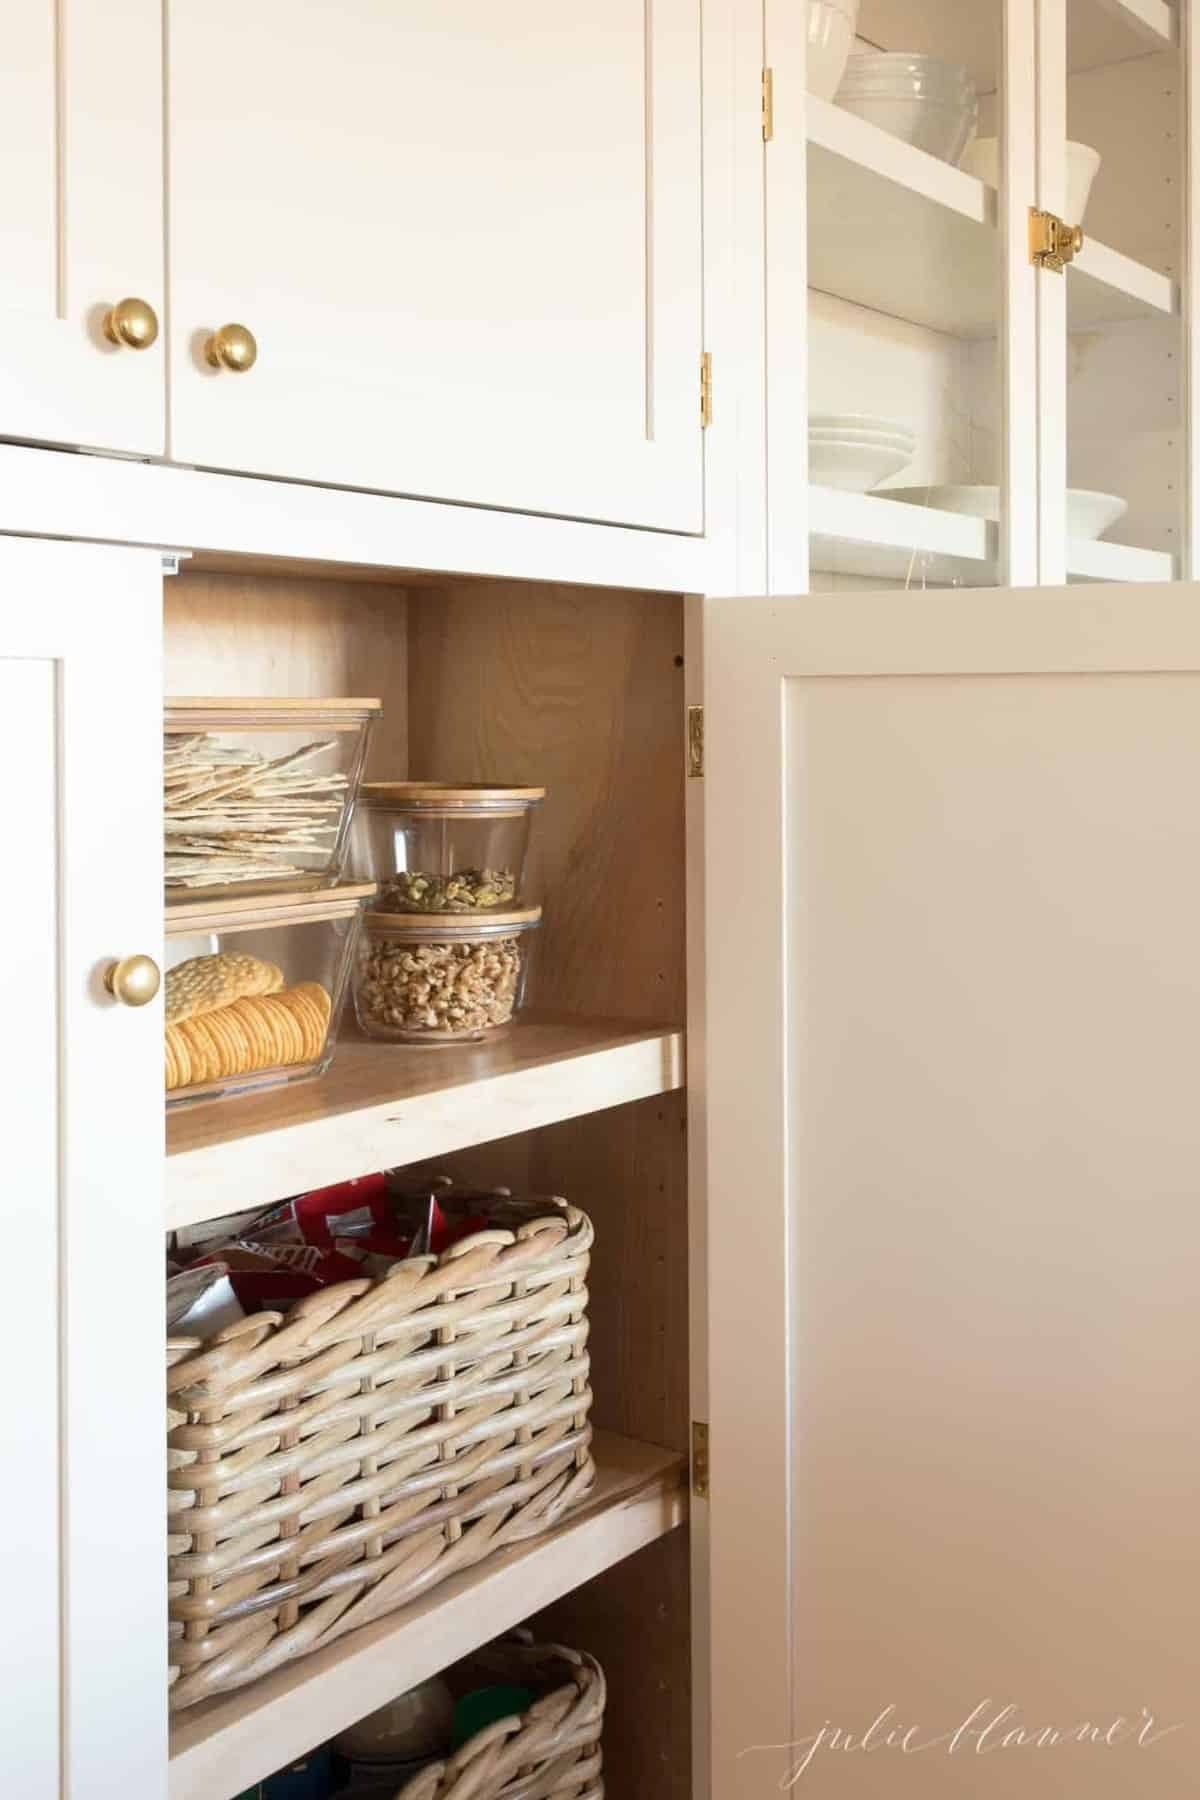 Looking into a pantry cabinet, clear jars and baskets storing food items.